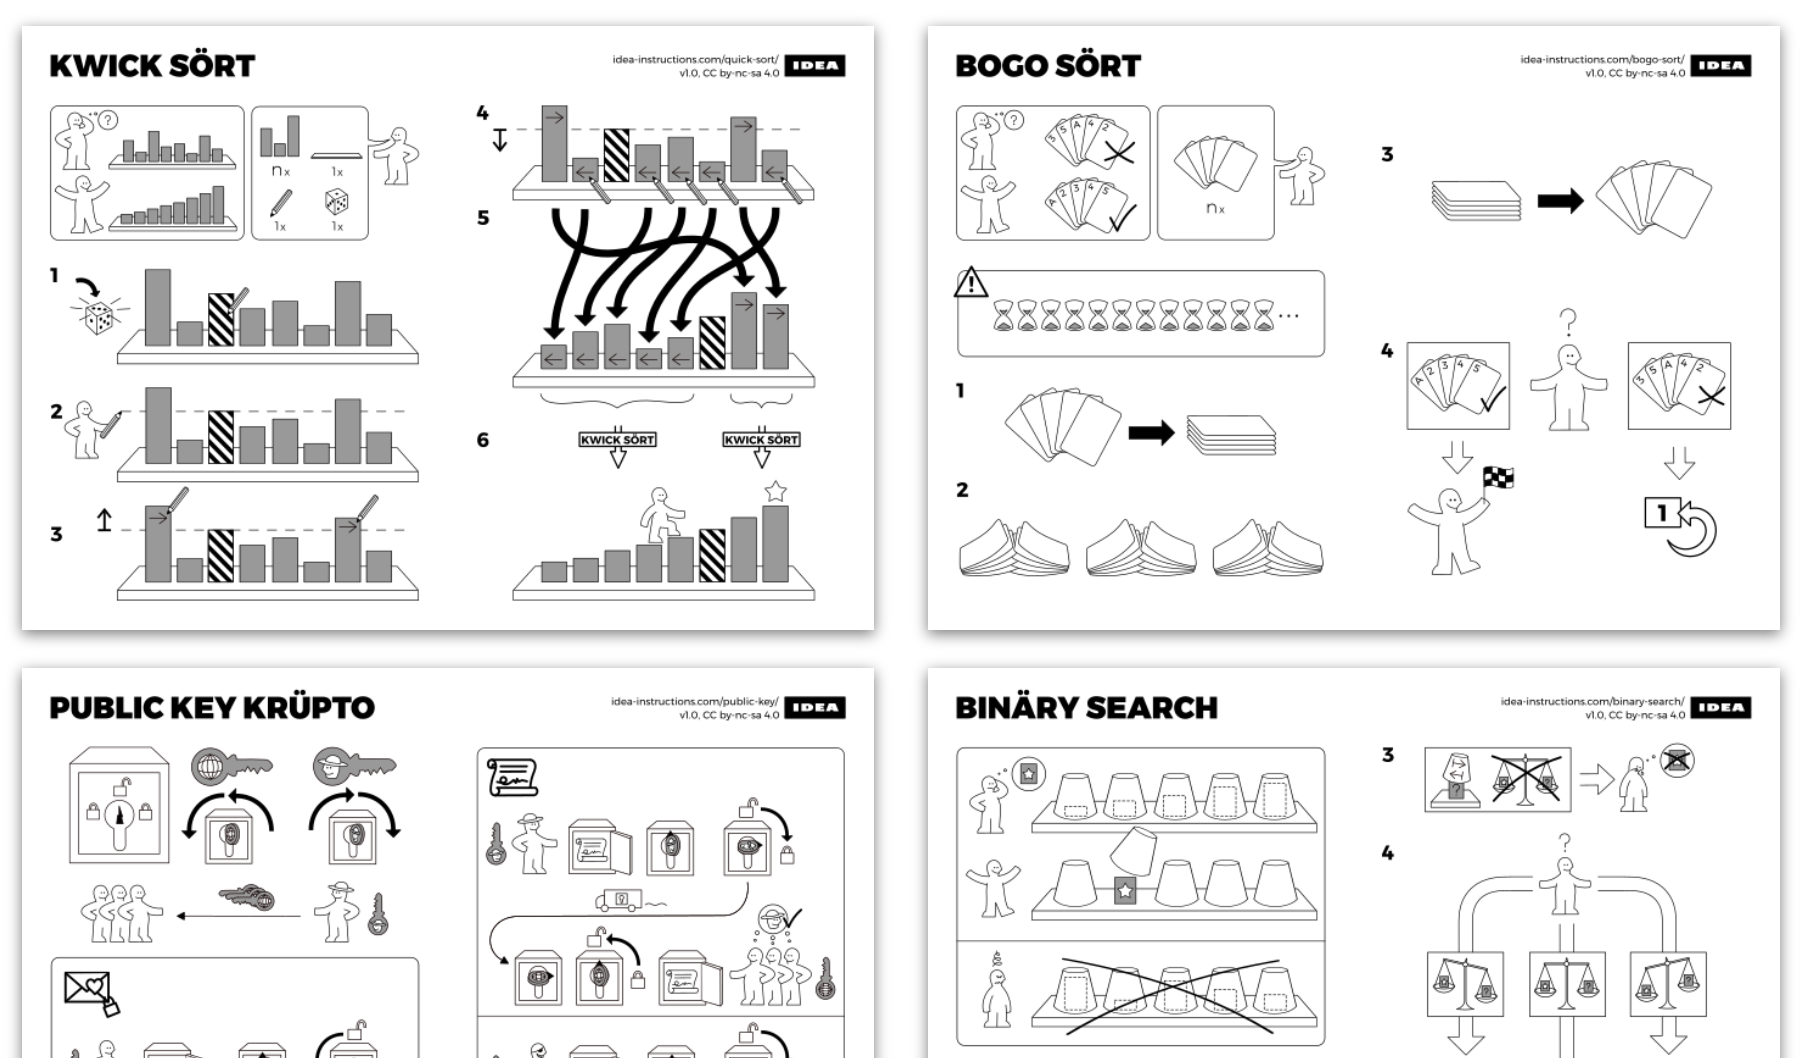 Black, white and gray illustrations that look like the ones for ikea furniture but are not.